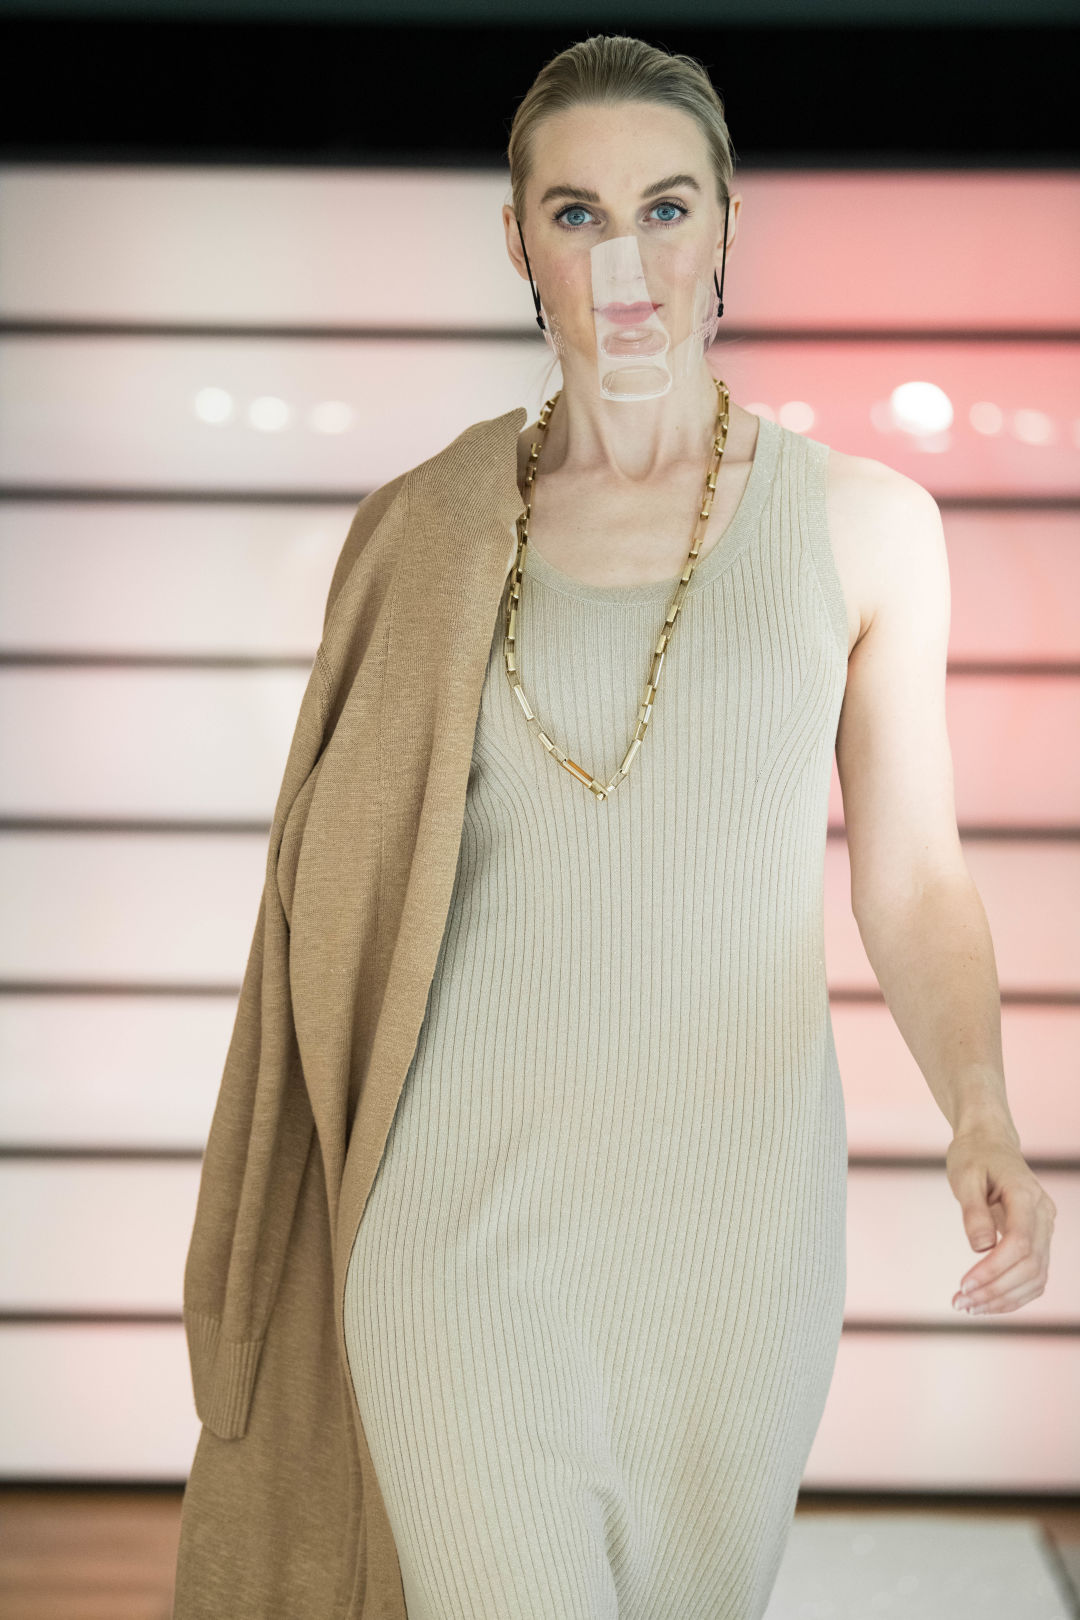 A woman walks a fashion runway in a cream colored dress with a tan sweater draped over one shoulder.